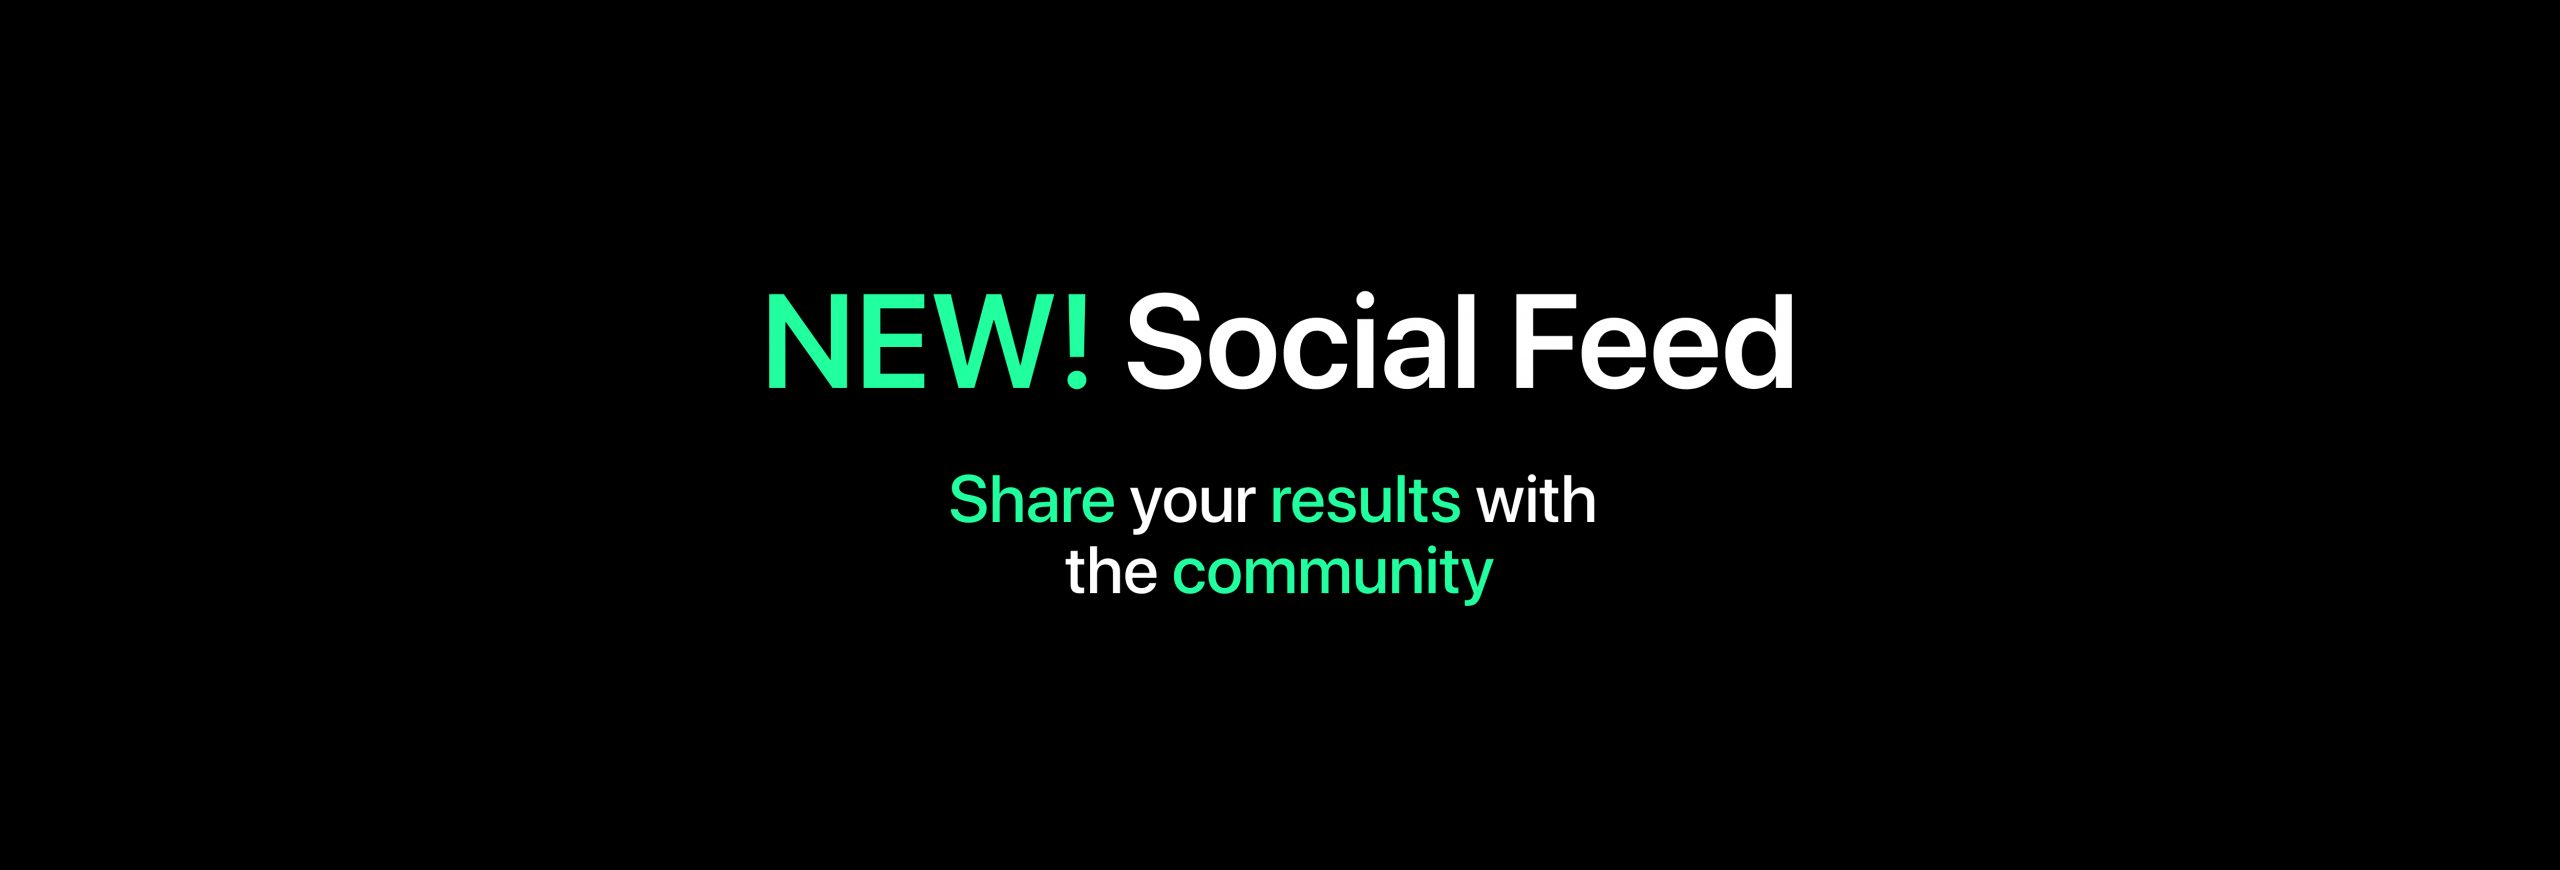 Share results with the community